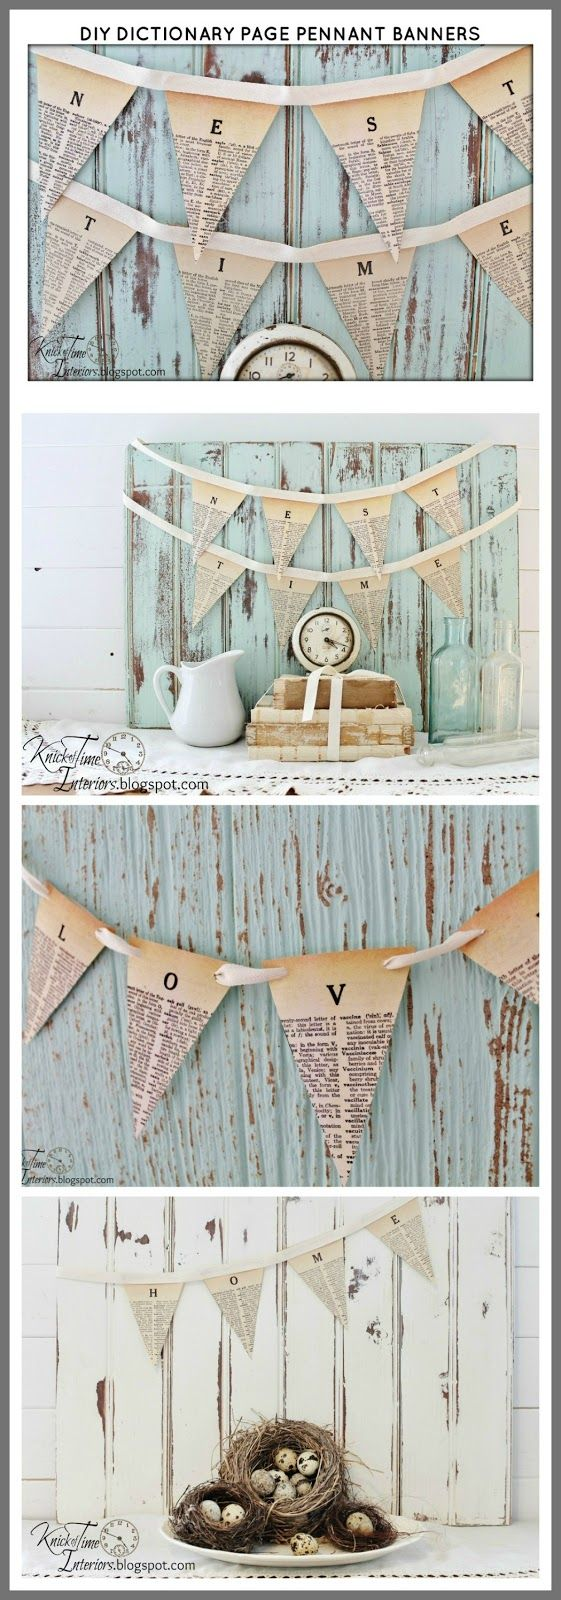 FREE Printable Dictionary Page Pennant Banners Tutorial & Printables @ knickoftime.net